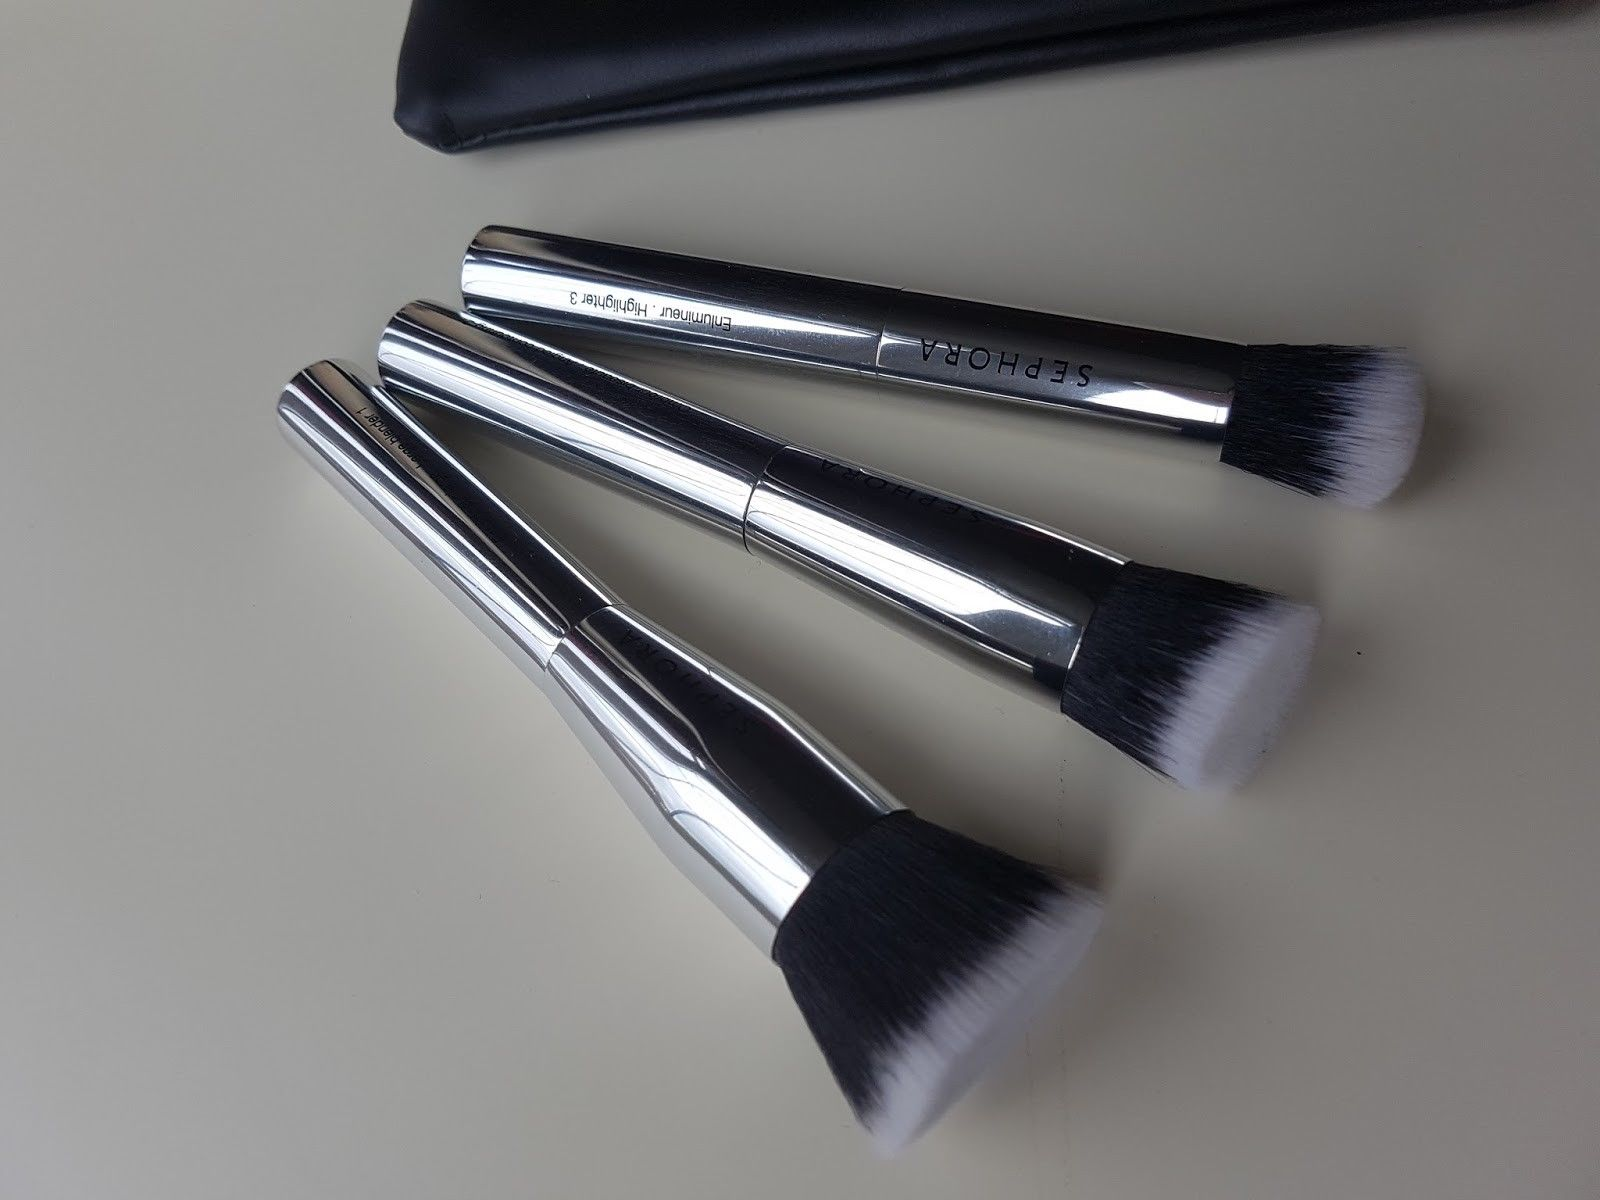 Sephora Contouring Brush